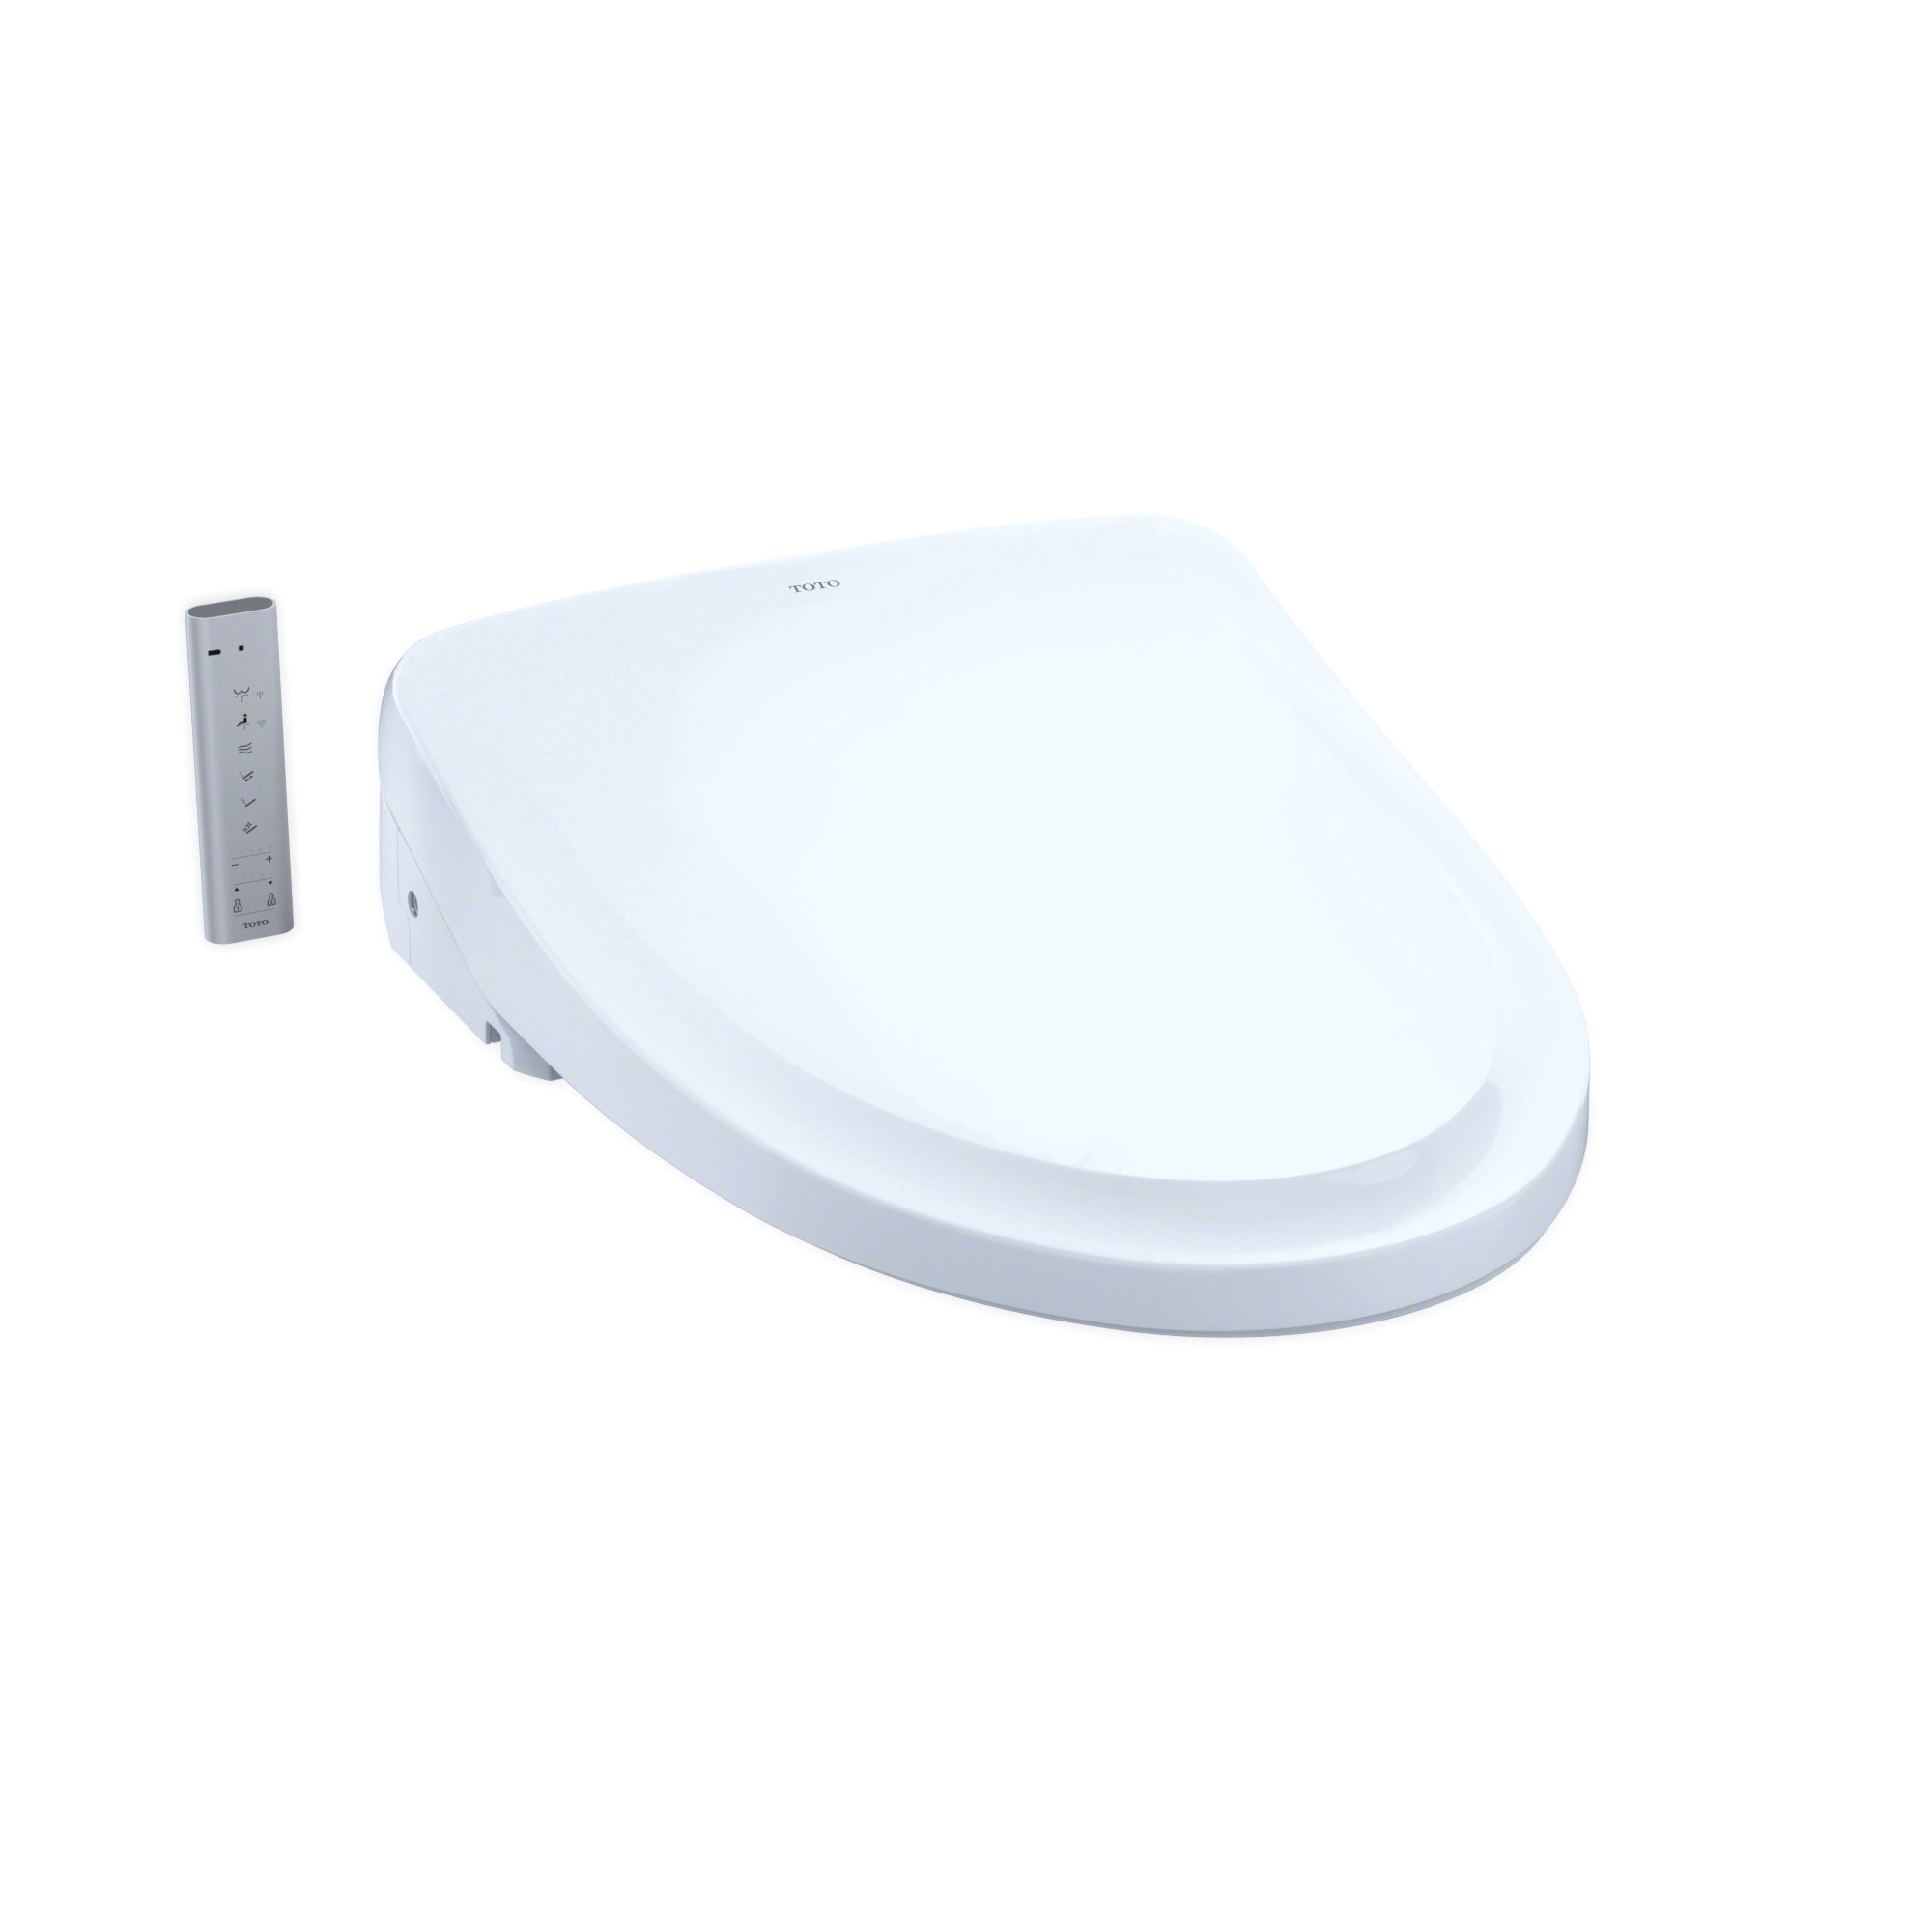 Toto® SW3044#01 Electronic Bidet Toilet Seat With ewater+® Technology, WASHLET® S500e, Elongated Front Bowl, Closed Front, Plastic, Cotton White, Import